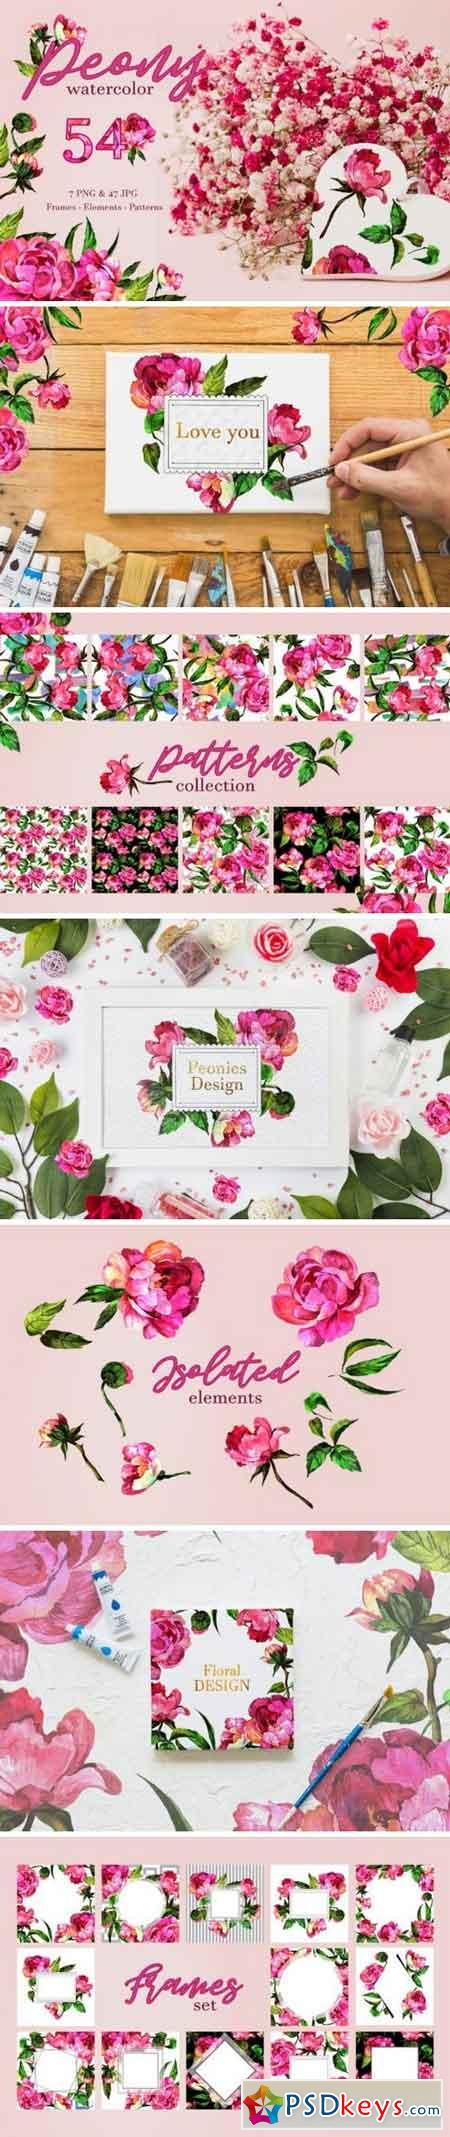 Peony Watercolor png 3307818